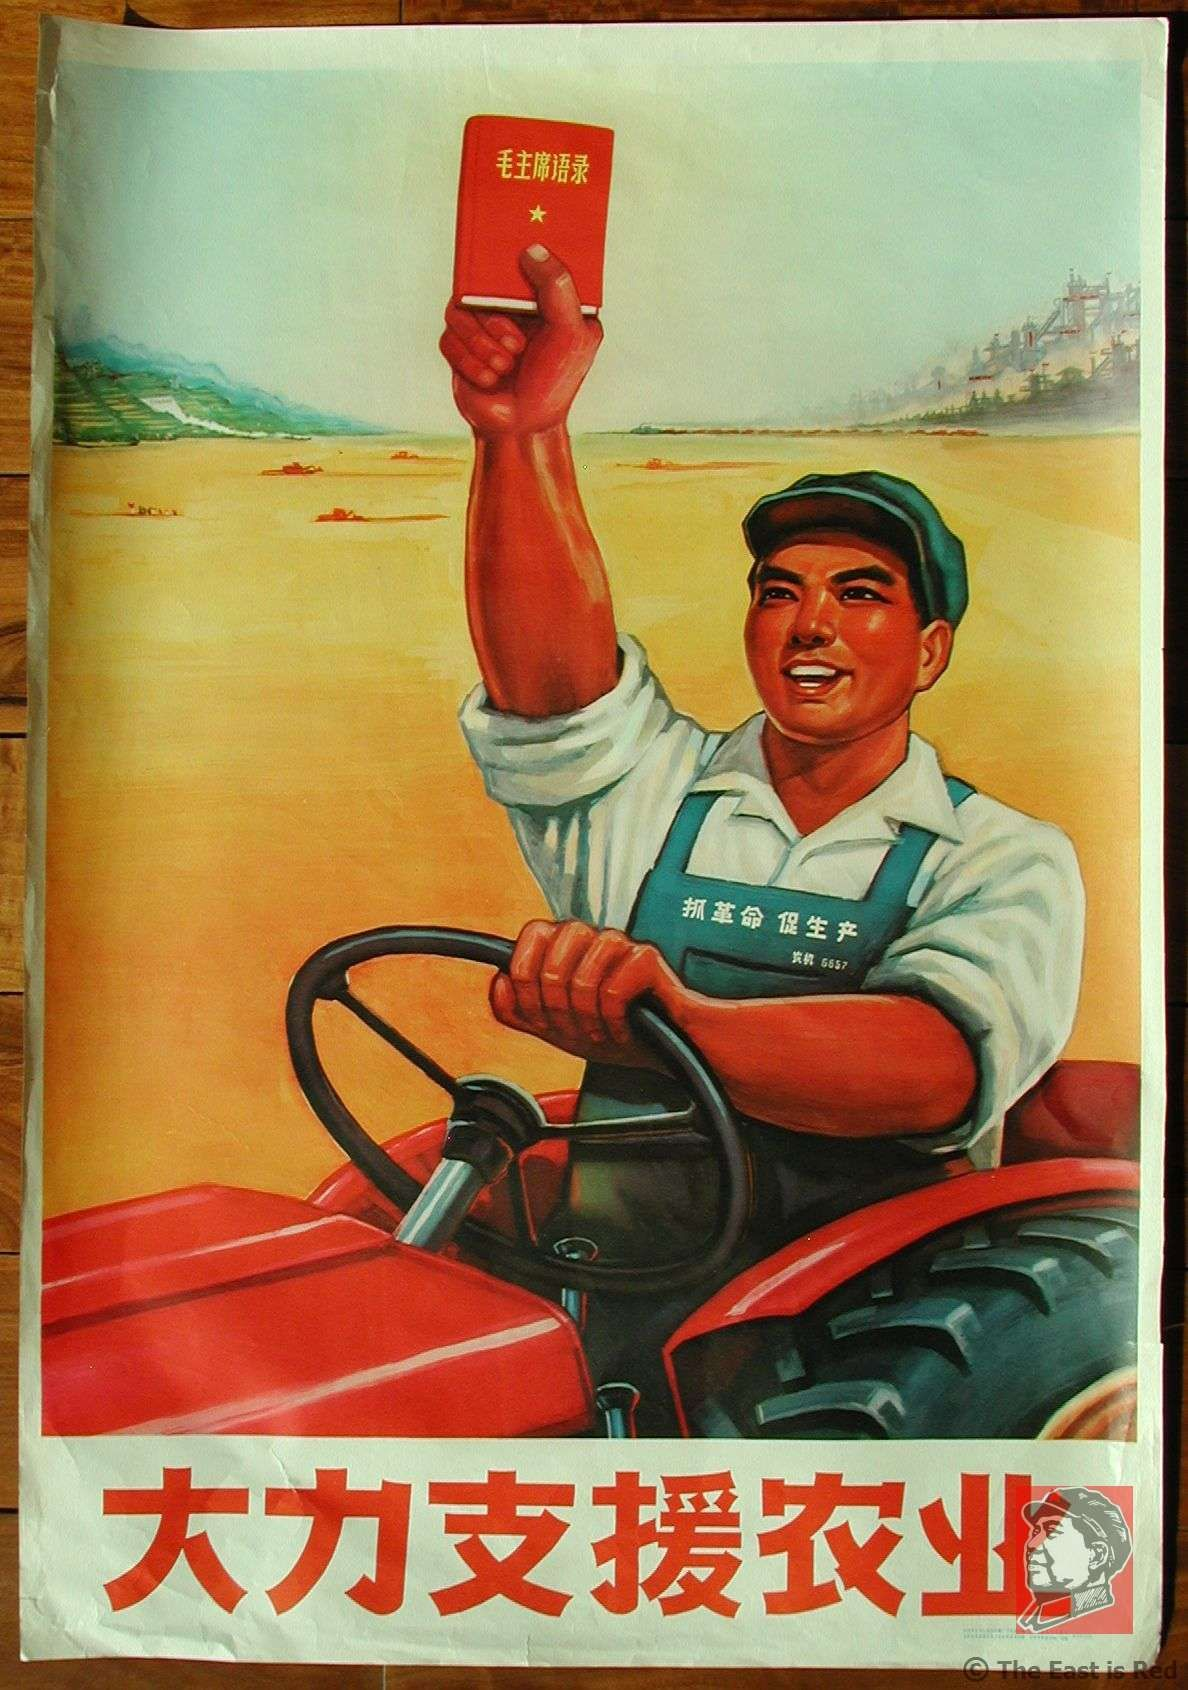 Provide Great Support to Agriculture. Poster from the Cultural Revolution depicting a model worker in the new Chin